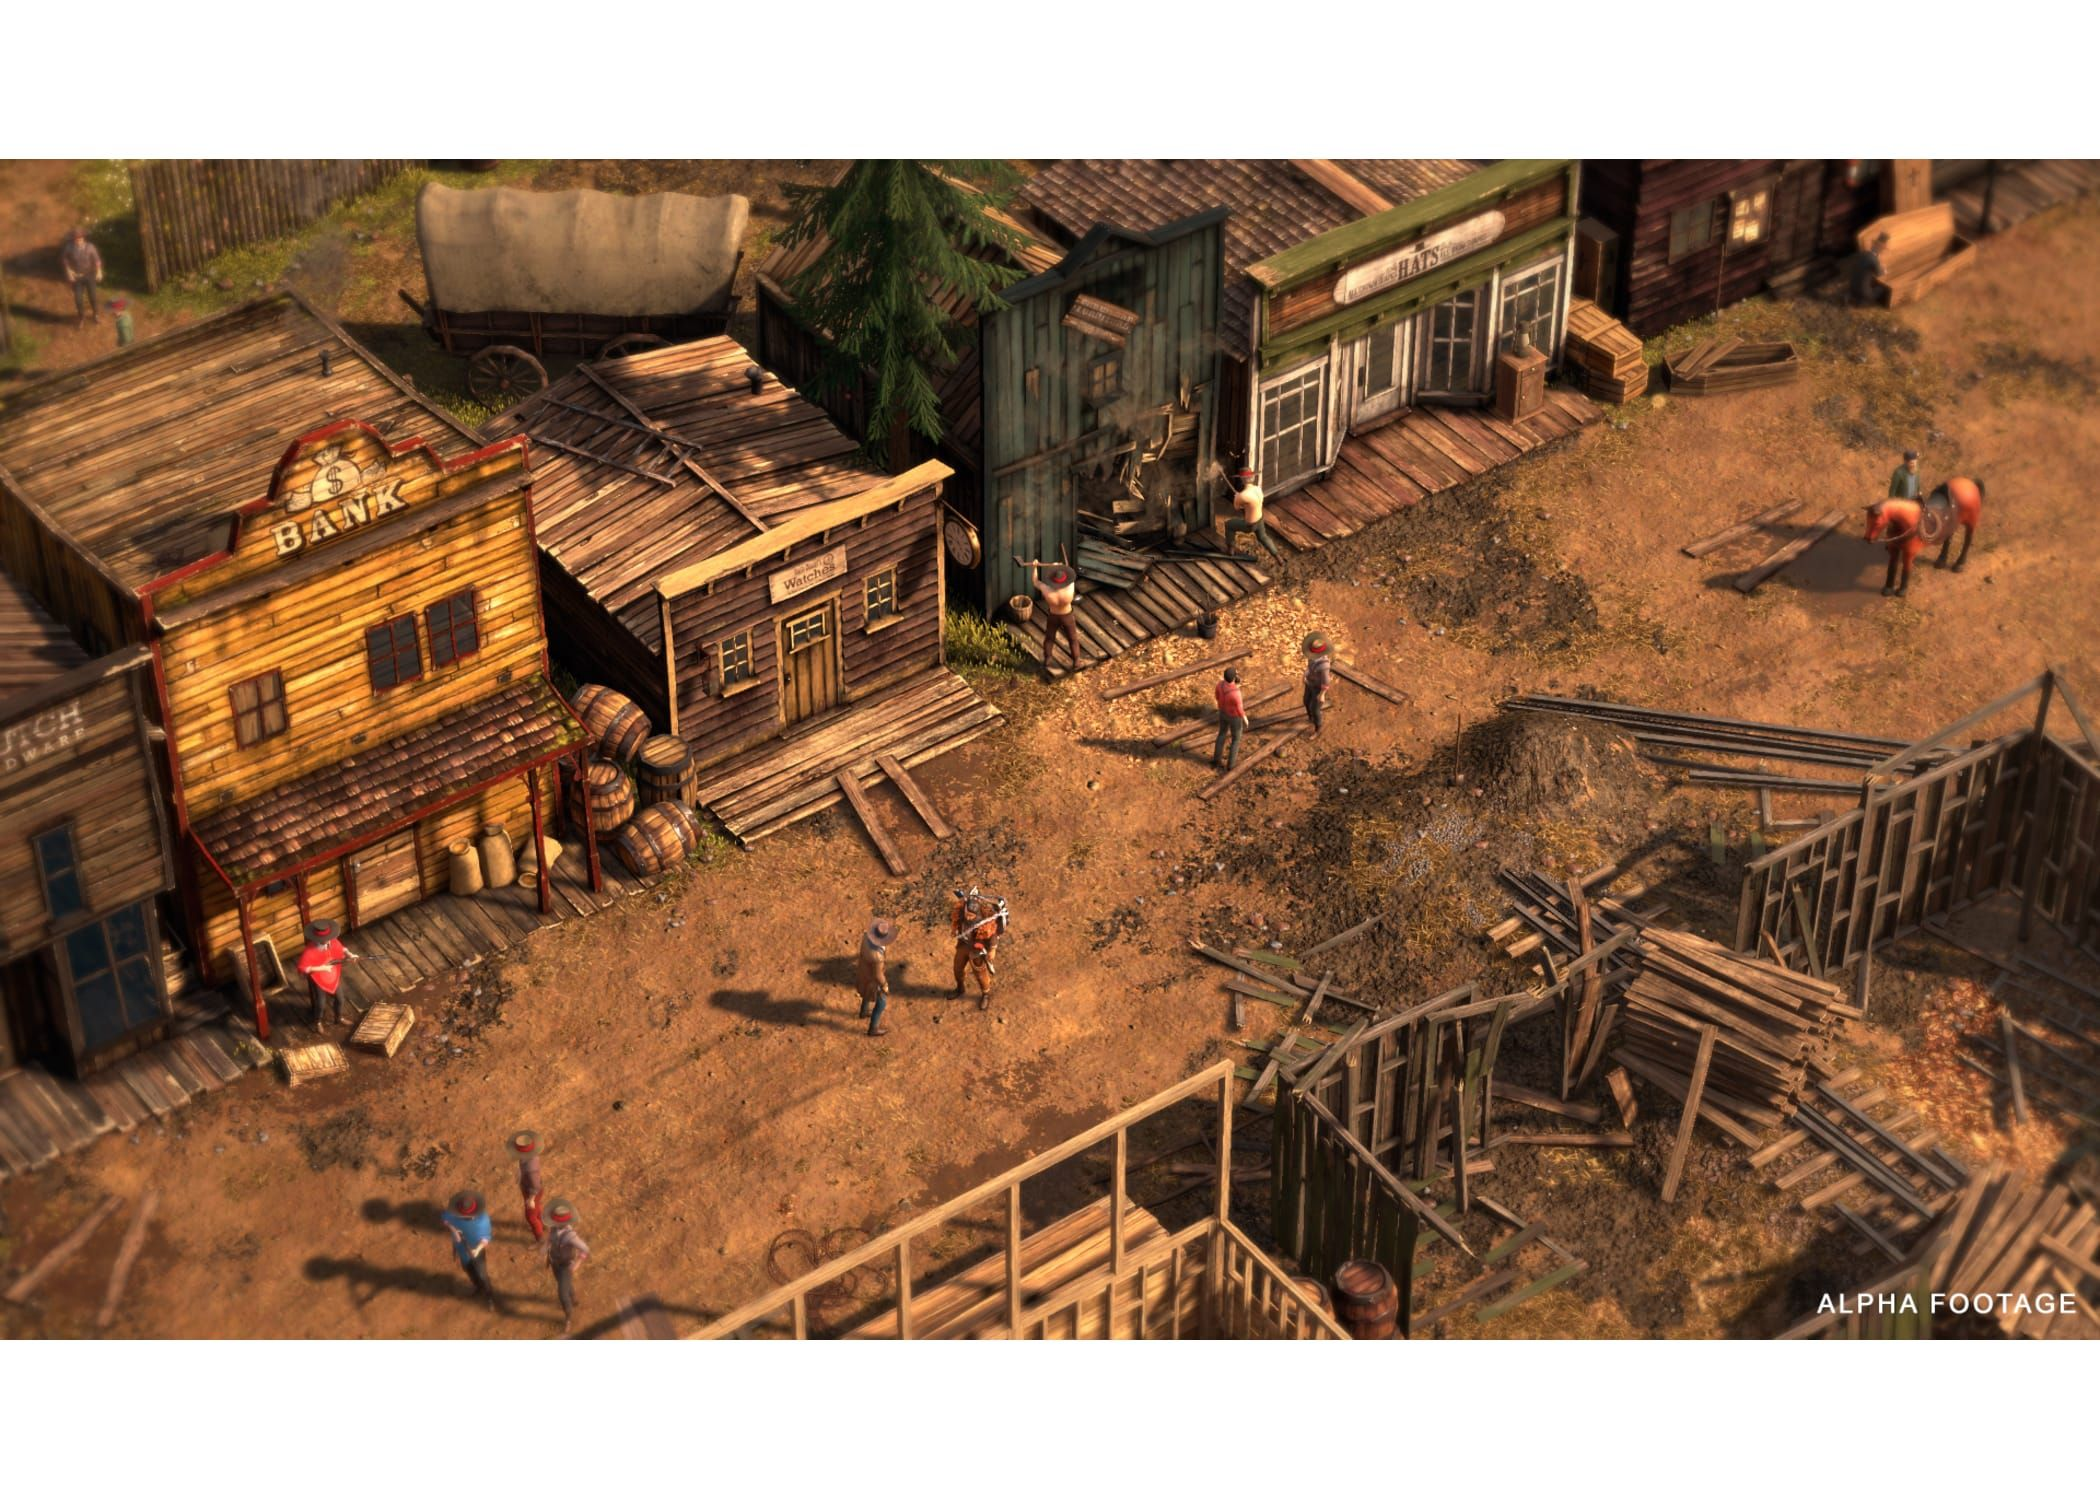 Buy Desperados 3 On Xbox One Game Affiliate Aff Desperados Buy Game Xbox In 2020 The Last Of Us Digital Illustration Ps4 Or Xbox One